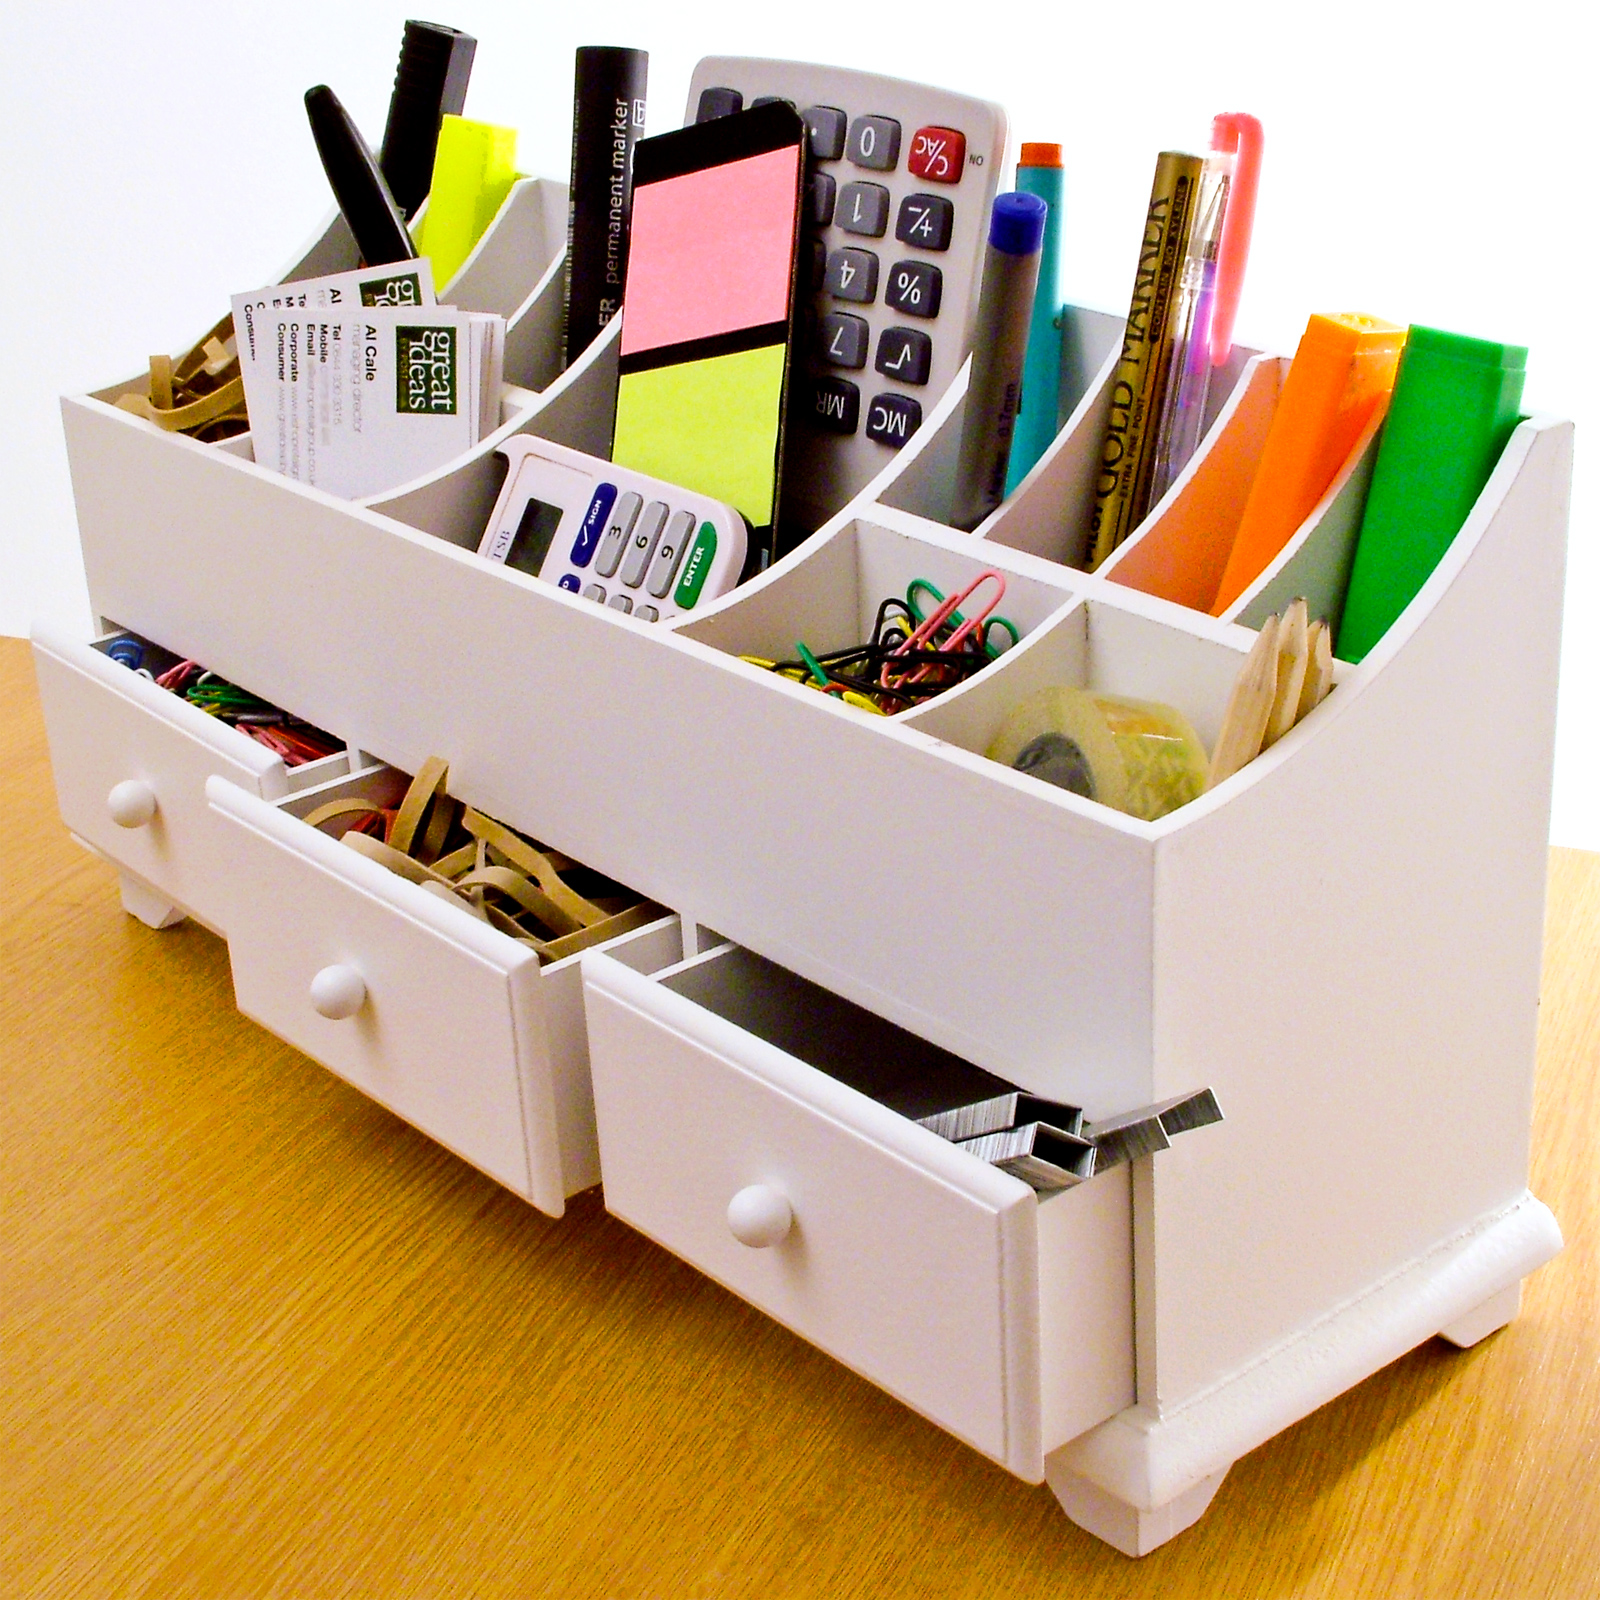 Multi Purpose Desk And Cosmetic Organiser Stylish Desk Organiser And. Full resolution‎  file, nominally Width 1600 Height 1600 pixels, file with #079110.